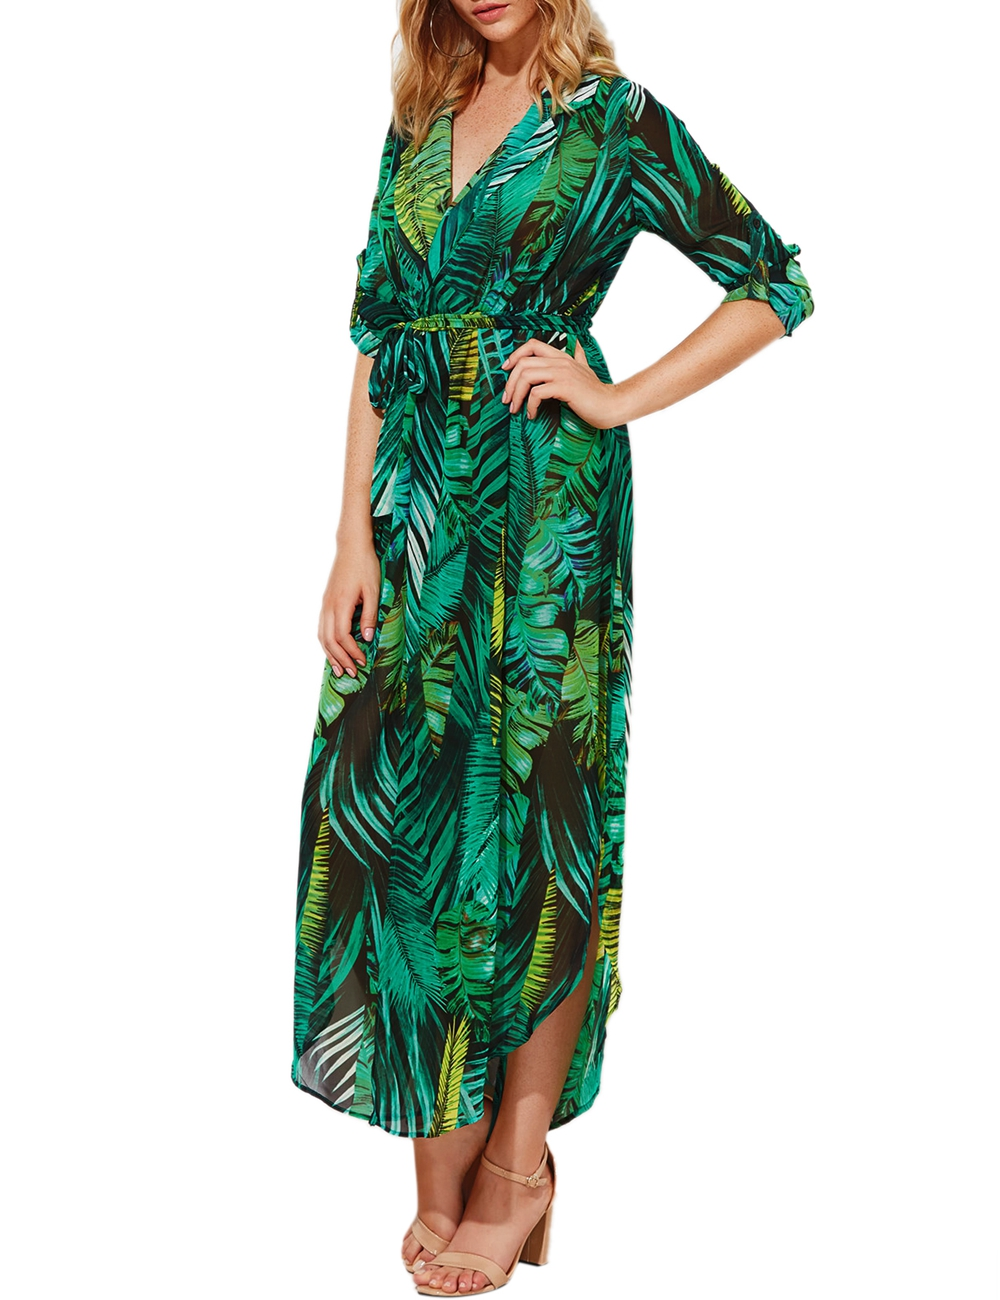 iShine autumn palm leaf printed long sleeve v neck beach maxi chiffon long dress casual split elegant women boho dress vestidos 3